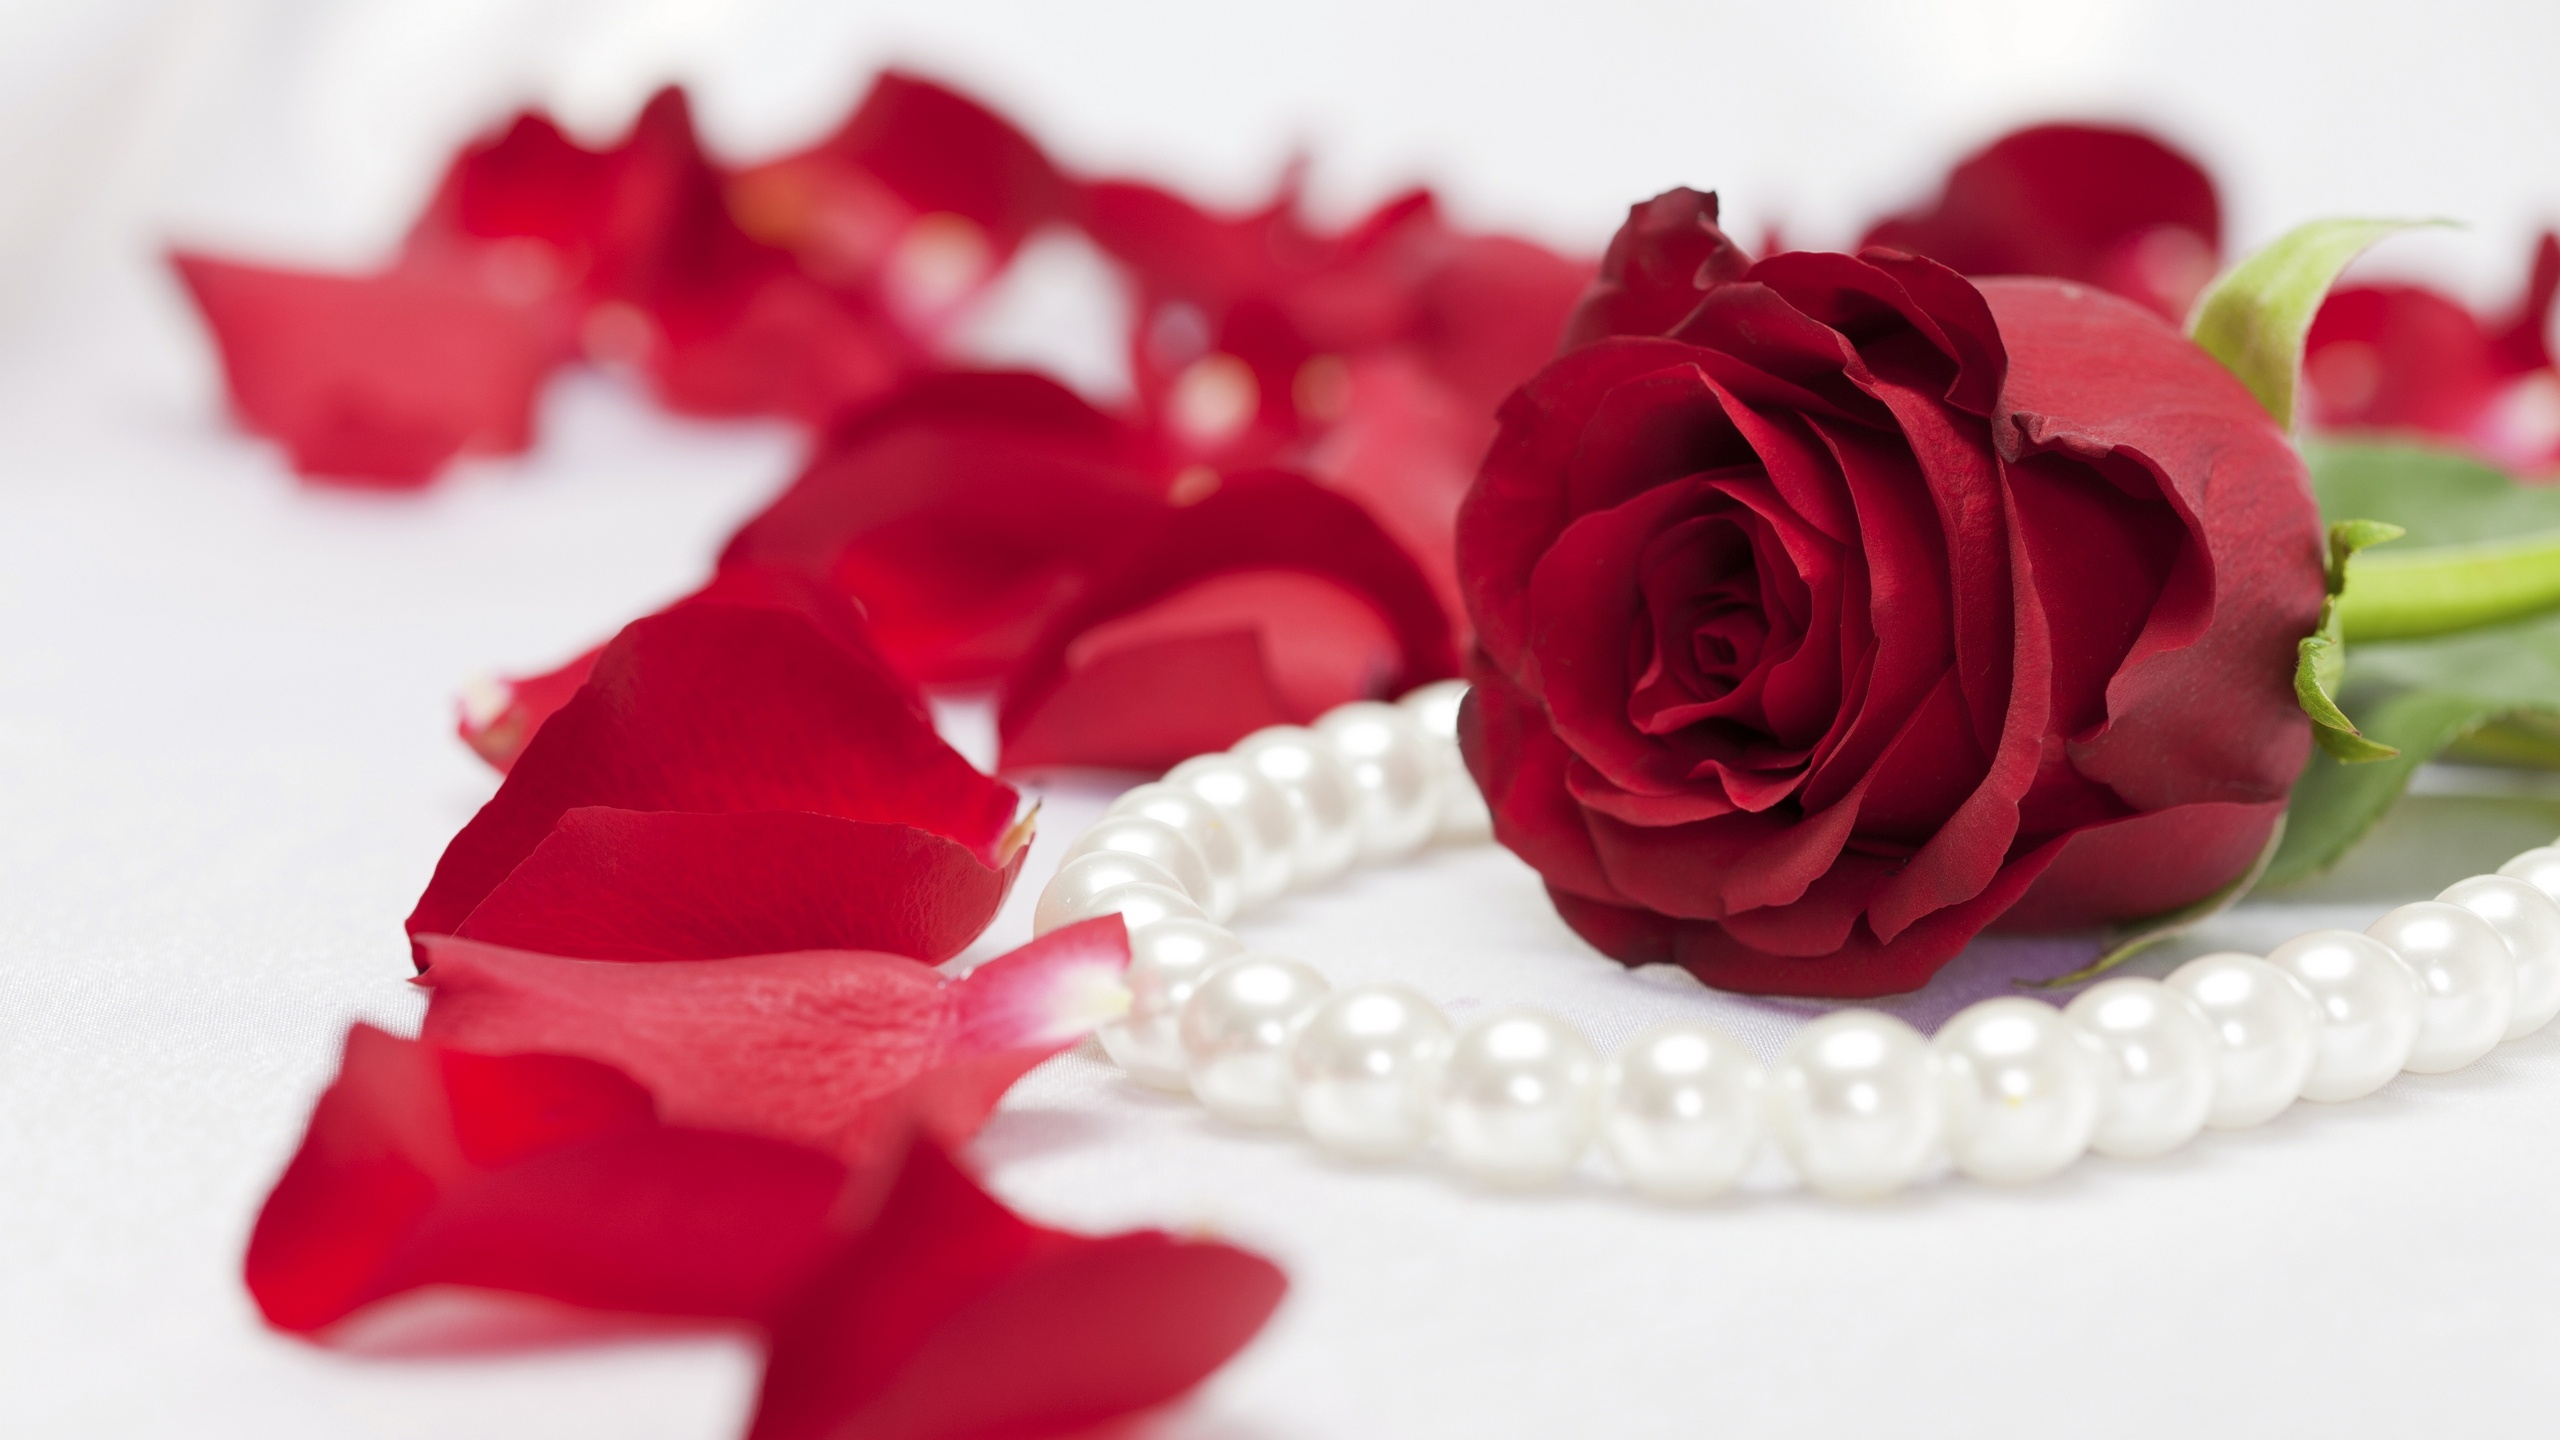 Pearl necklace red rose